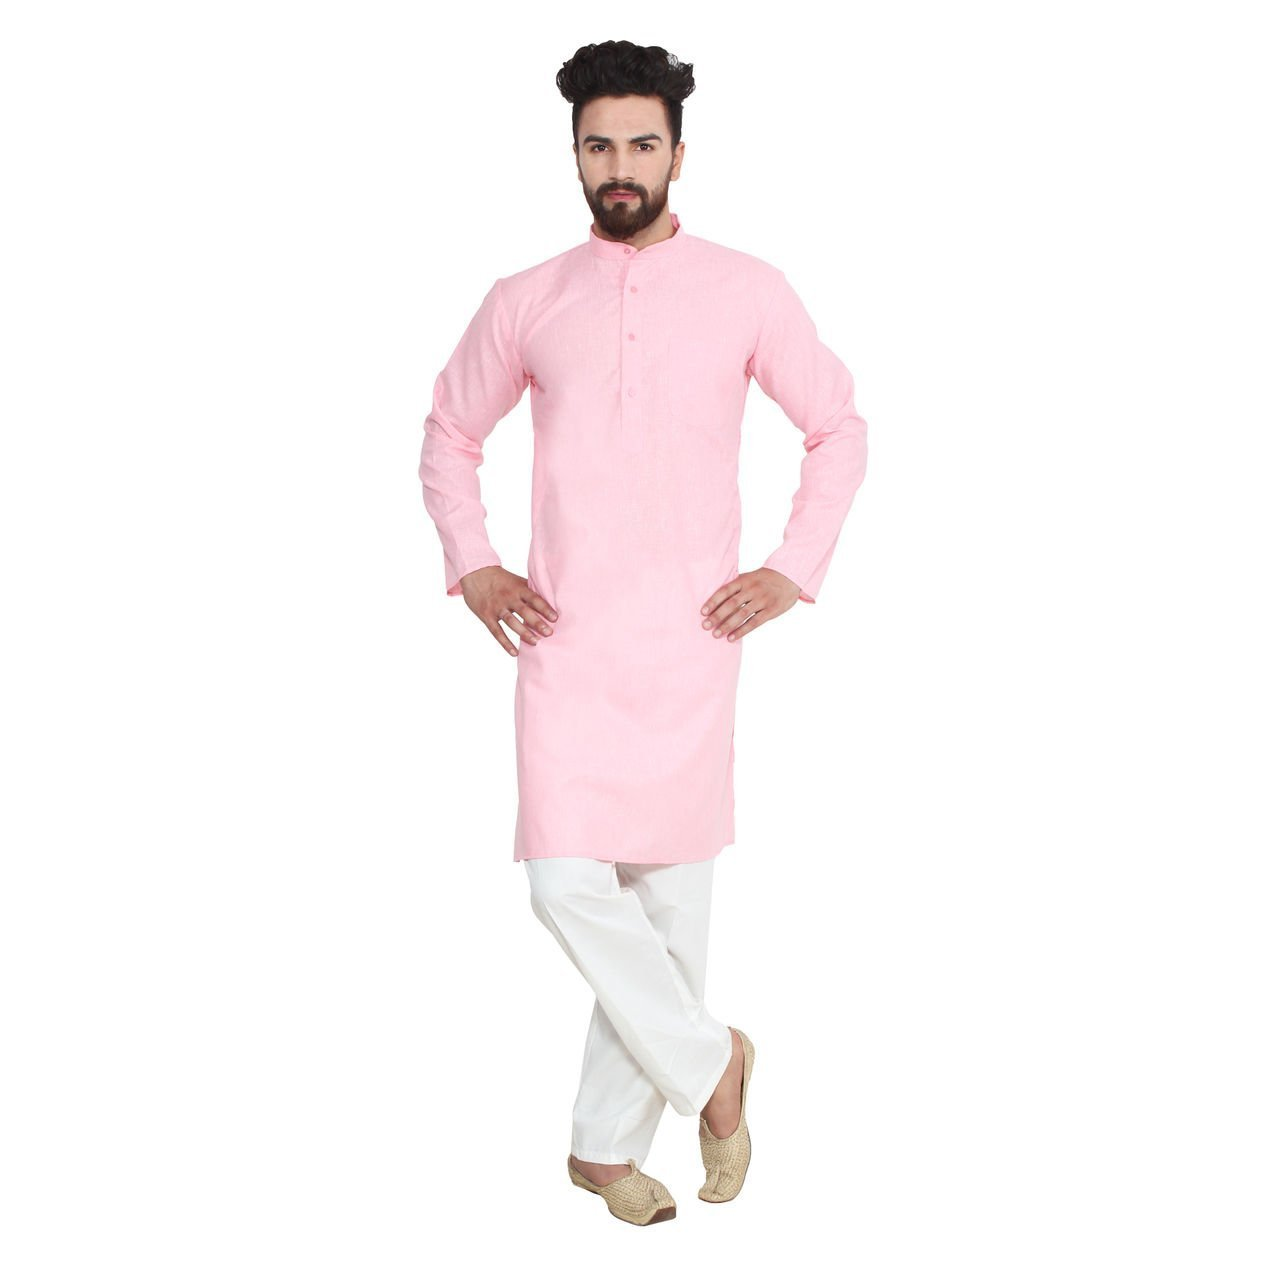 Royal Men's Solid Kurta Pyjama Linen Blend light-pink-swift-38-$P